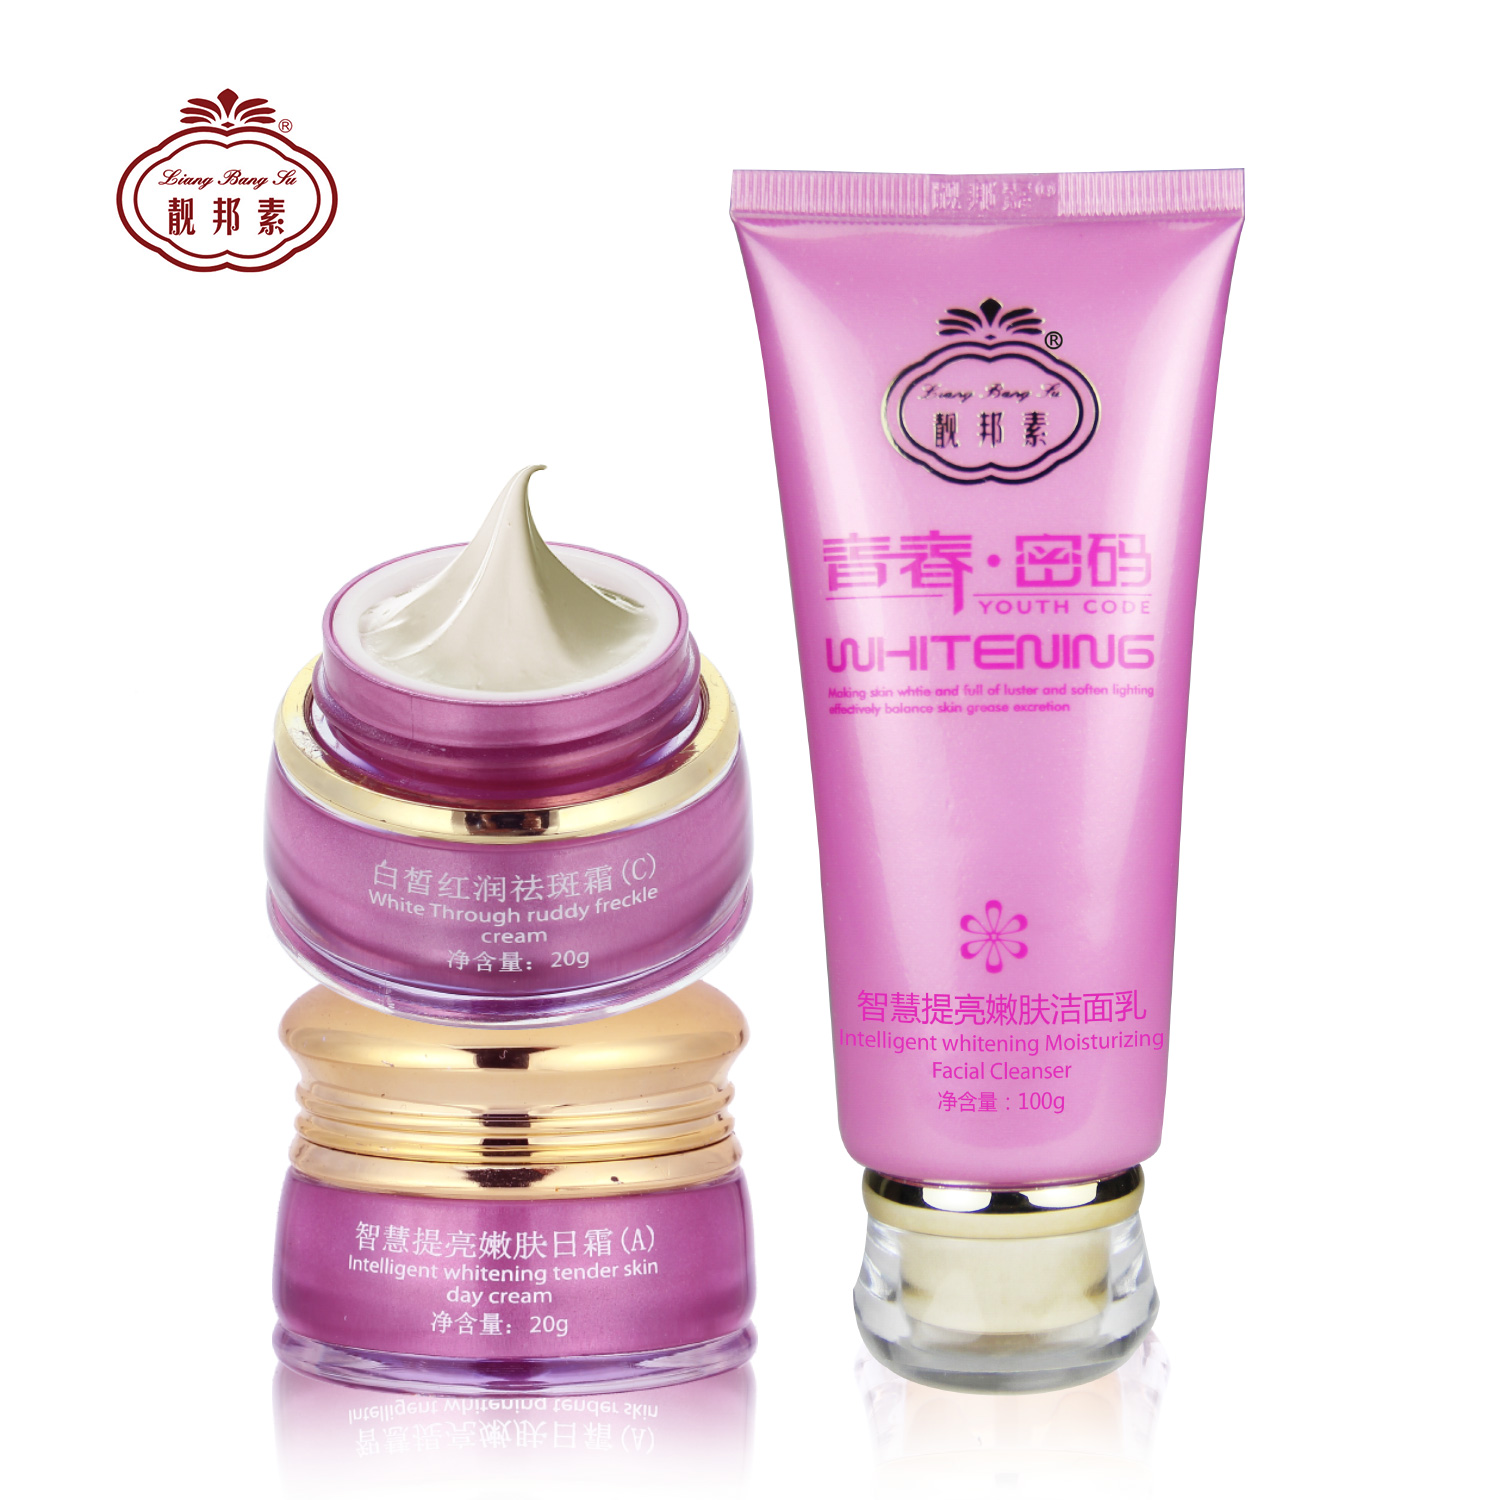 Genuine liang bang su rosy youth password whitening moisturizing cream blemish freckles freckle cream 2 + 1 Set three